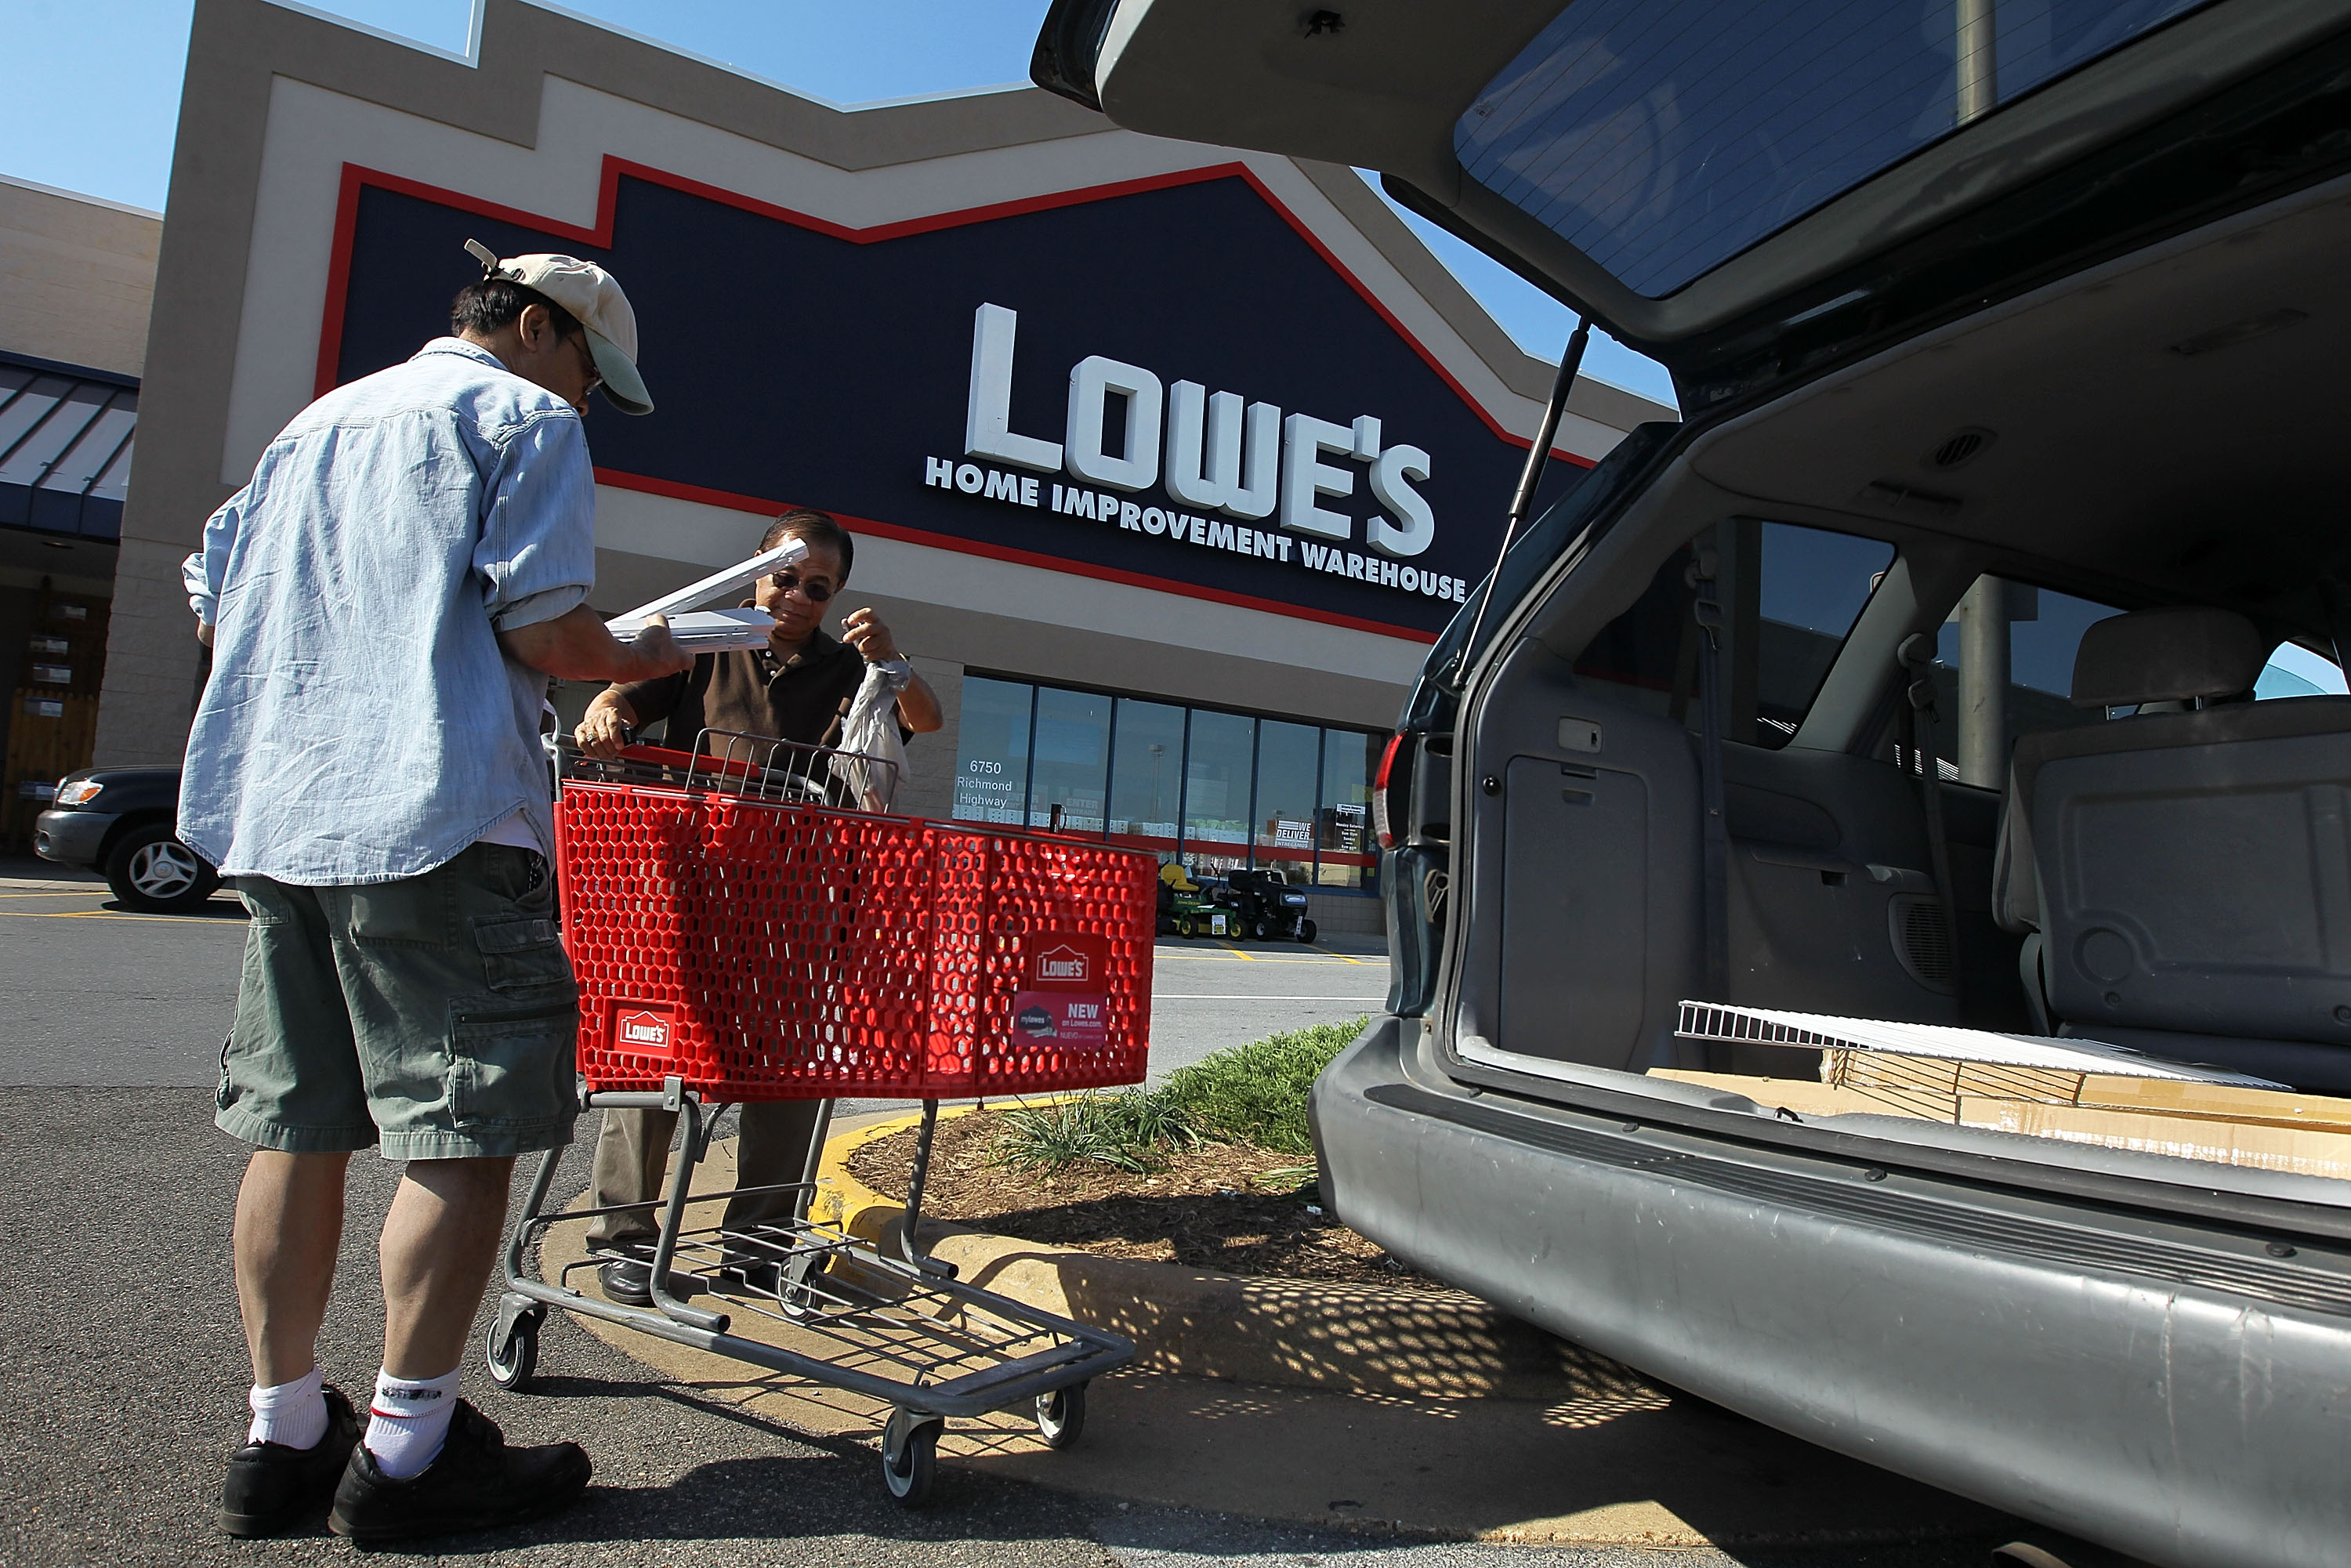 Customers load their purchases into a vehicle outside a Lowe's store in Alexandria, Va.